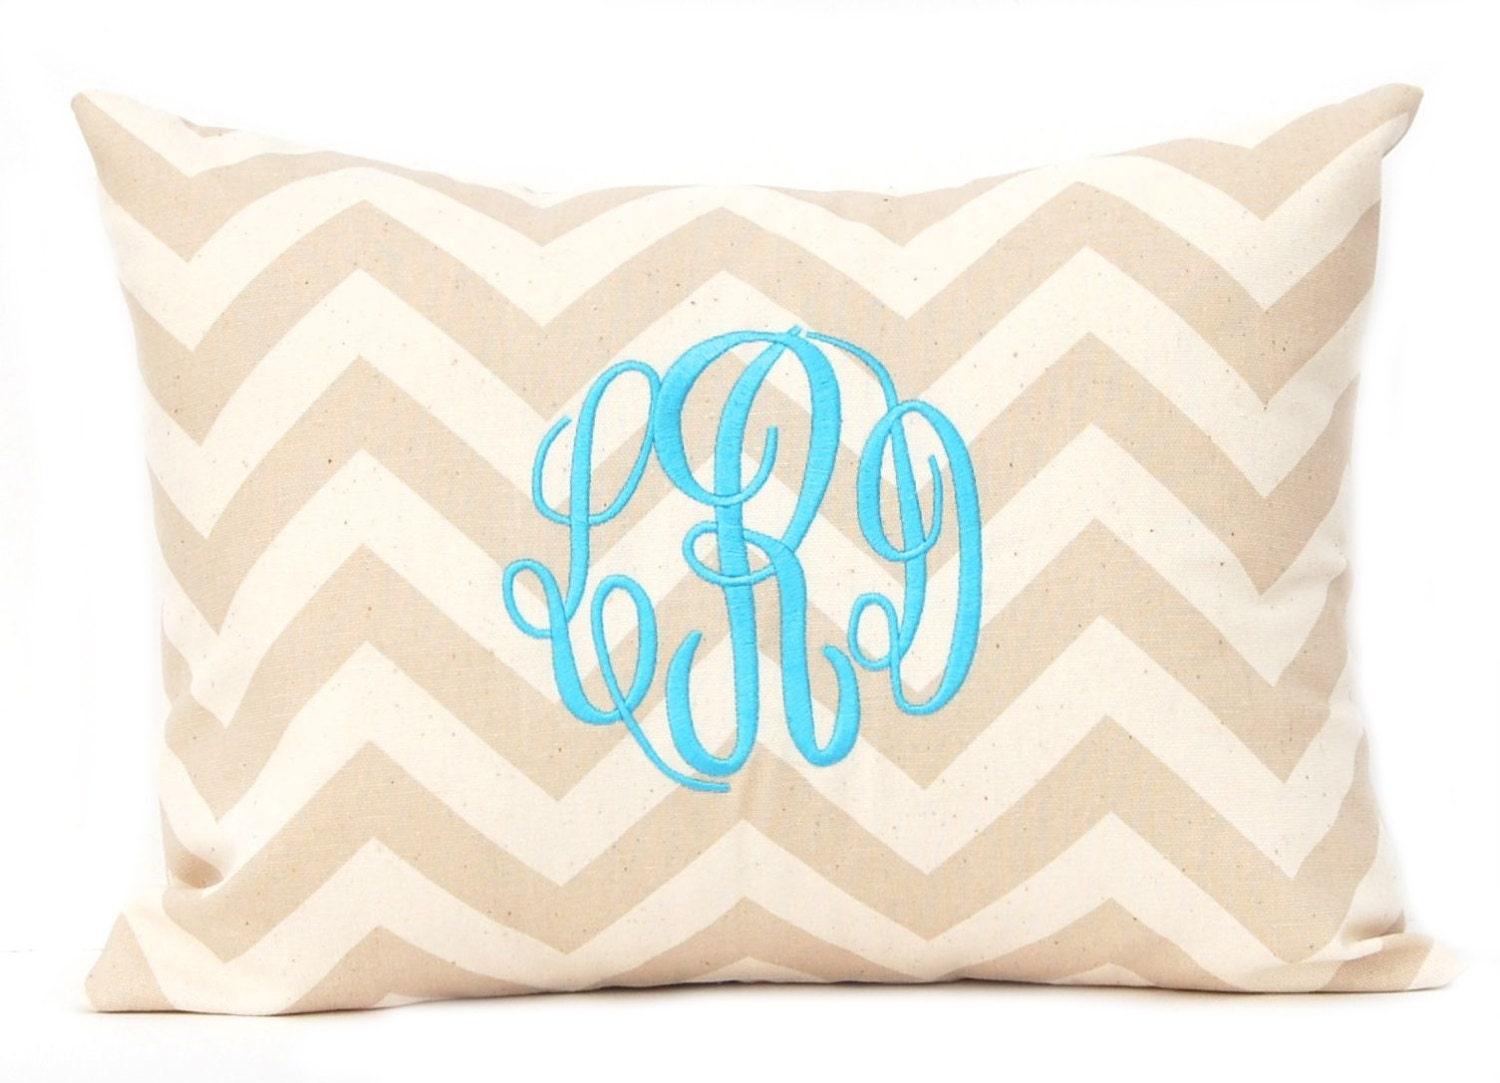 Monogram Pillow Cover Tan Chevron Pillow Cover with Script